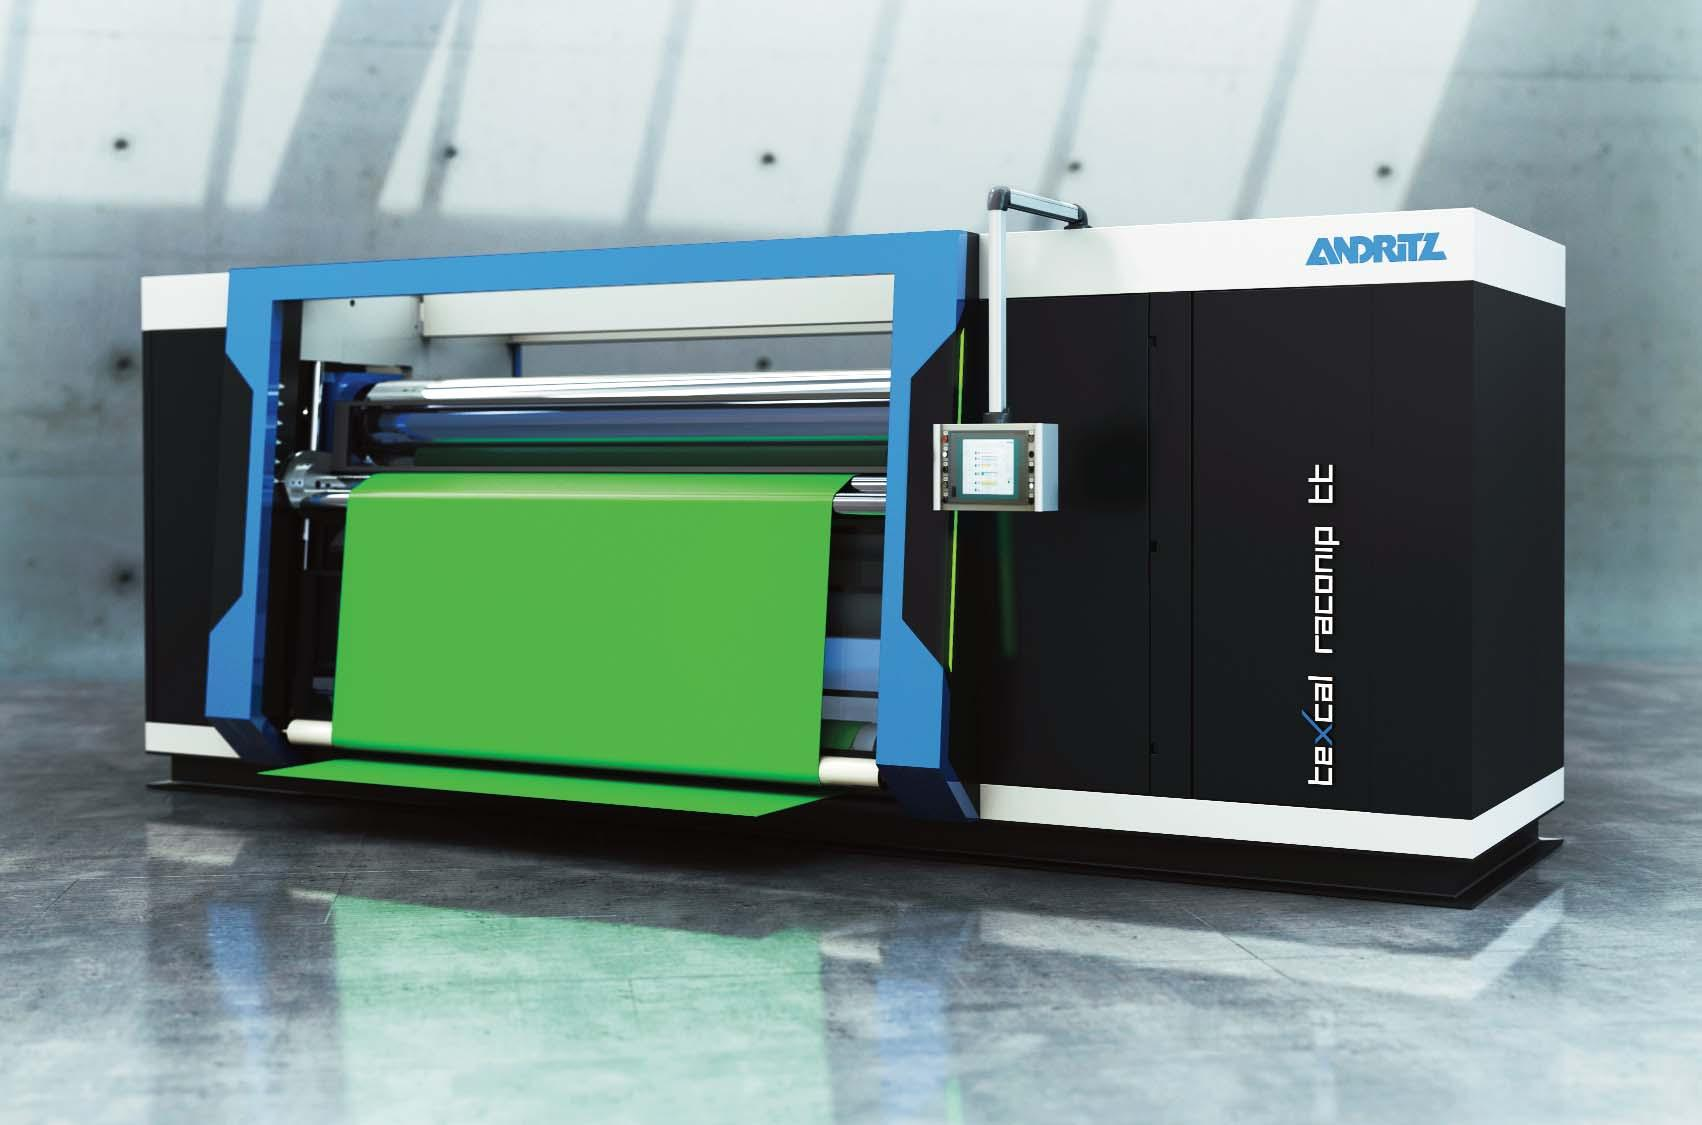 Page 52 of ANDRITZ presents new generation of textile calendering